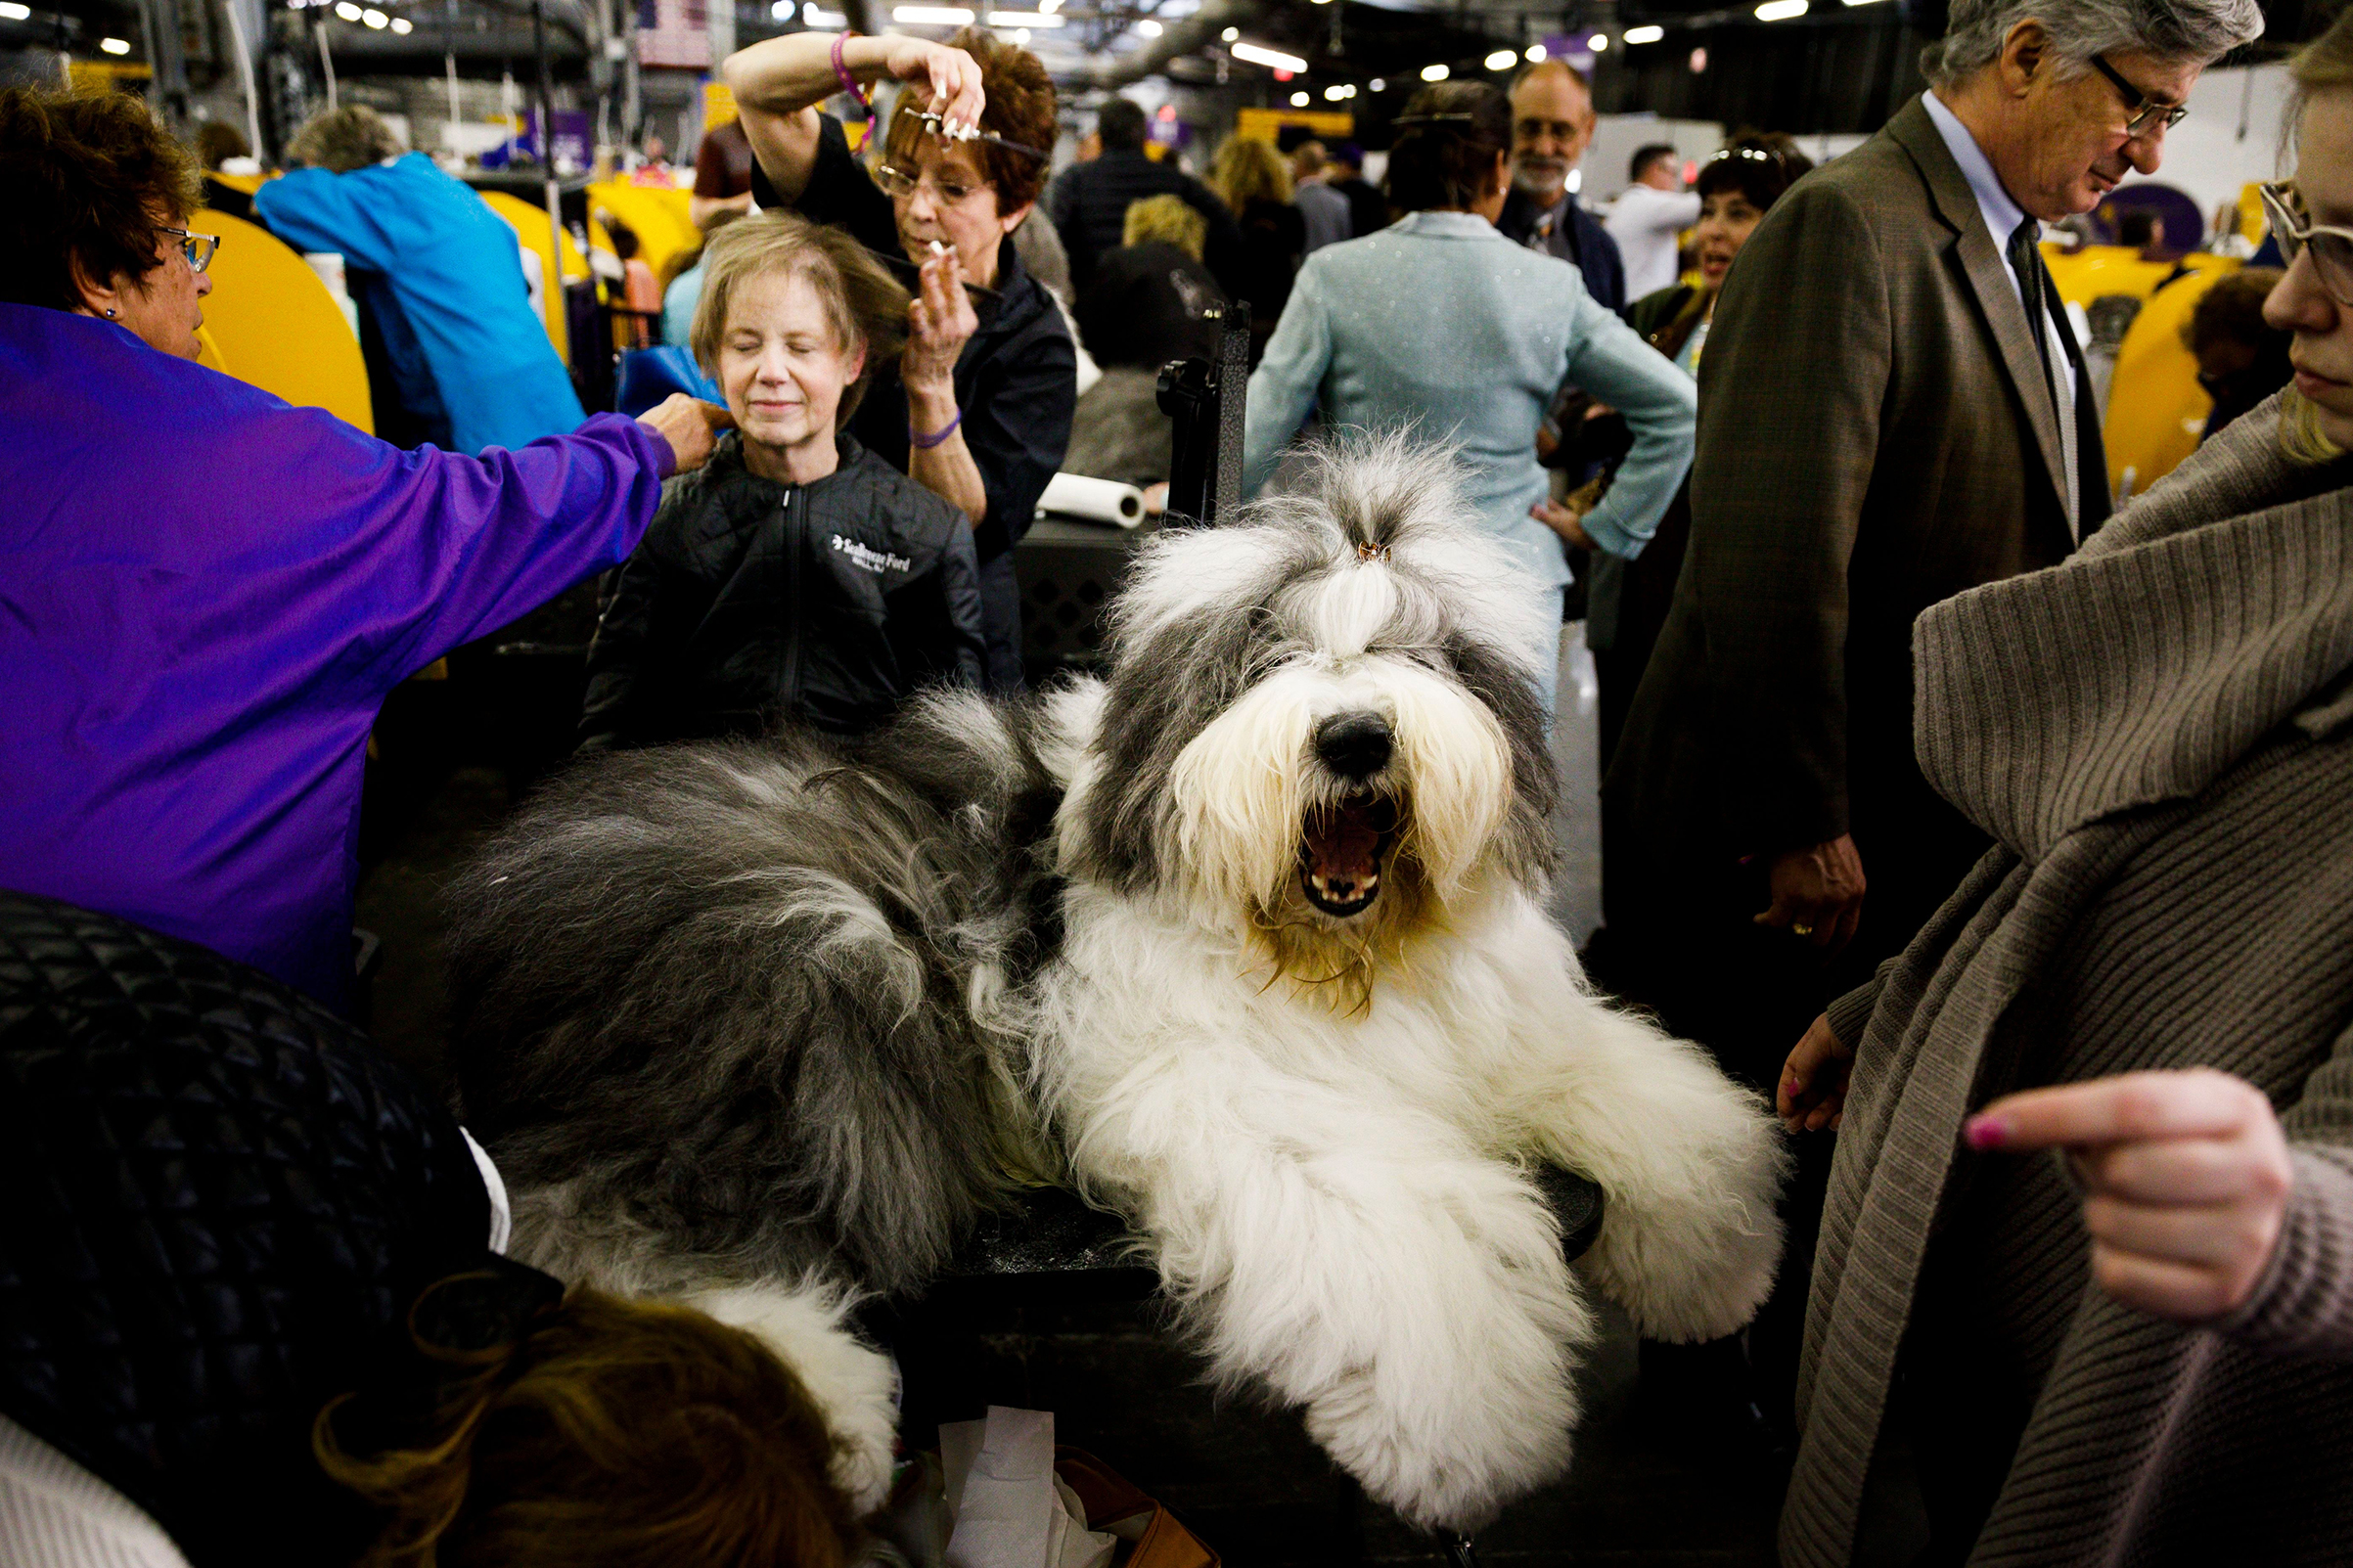 An Old English Sheepdog named 'Champion Haystacks Montgomery Spartan General' is groomed for competition as a woman gets a hair cut in the background during the 2018 Westminster Kennel Club Dog Show in New York, on Feb. 12, 2018.